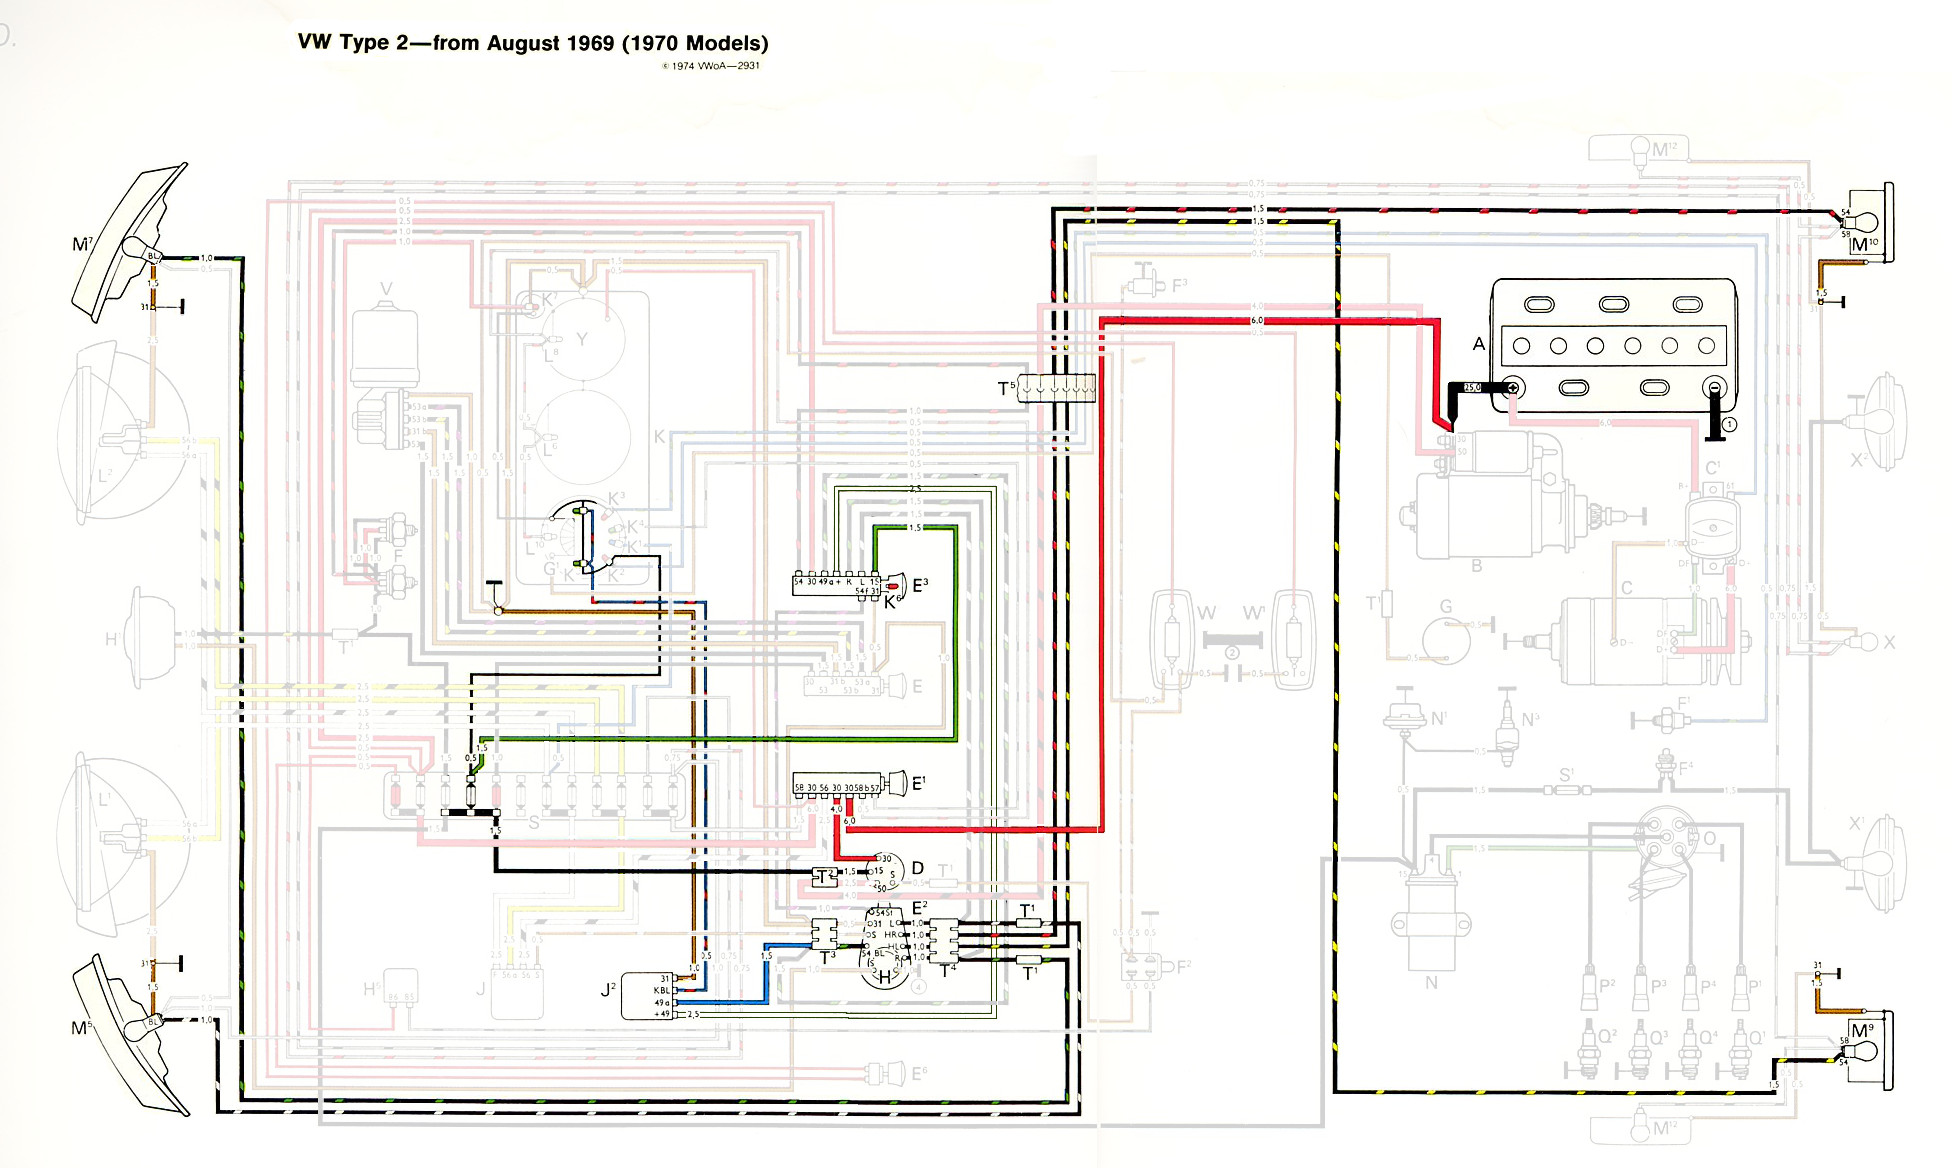 Type 2 Wiring Diagrams 1974 Camaro Diagram